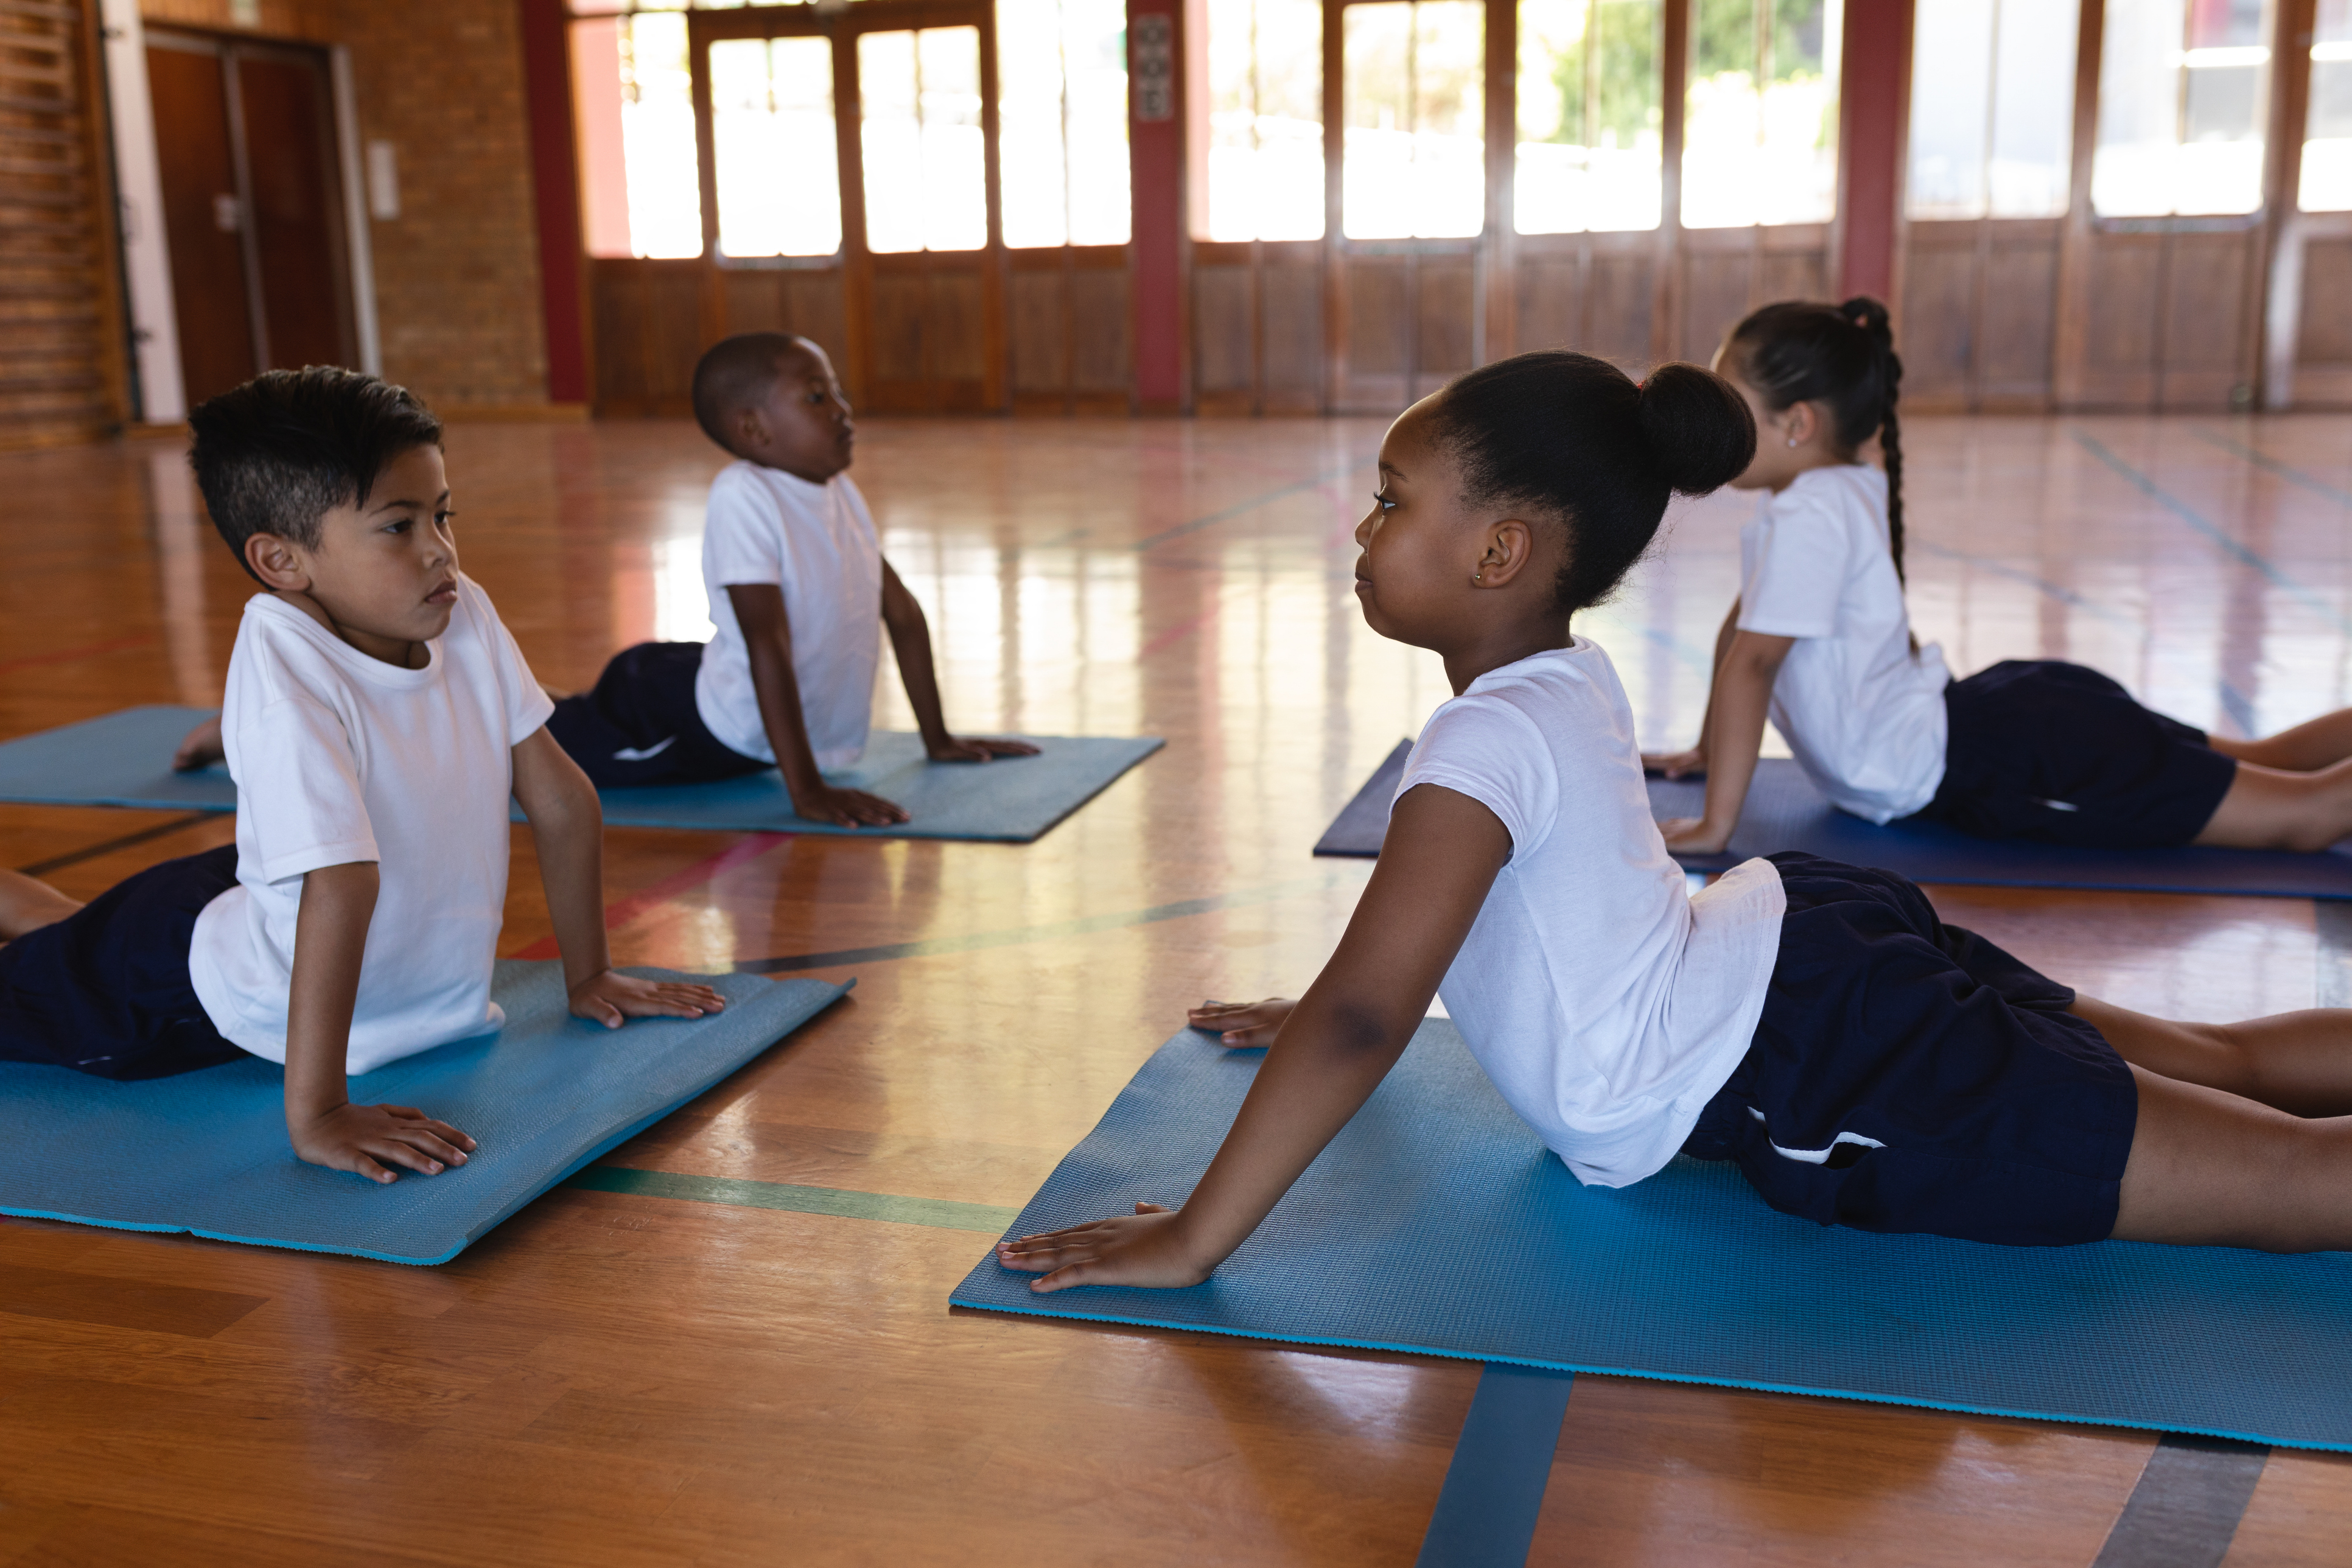 Side view of concentrate schoolkids doing yoga position on a yoga mat in school